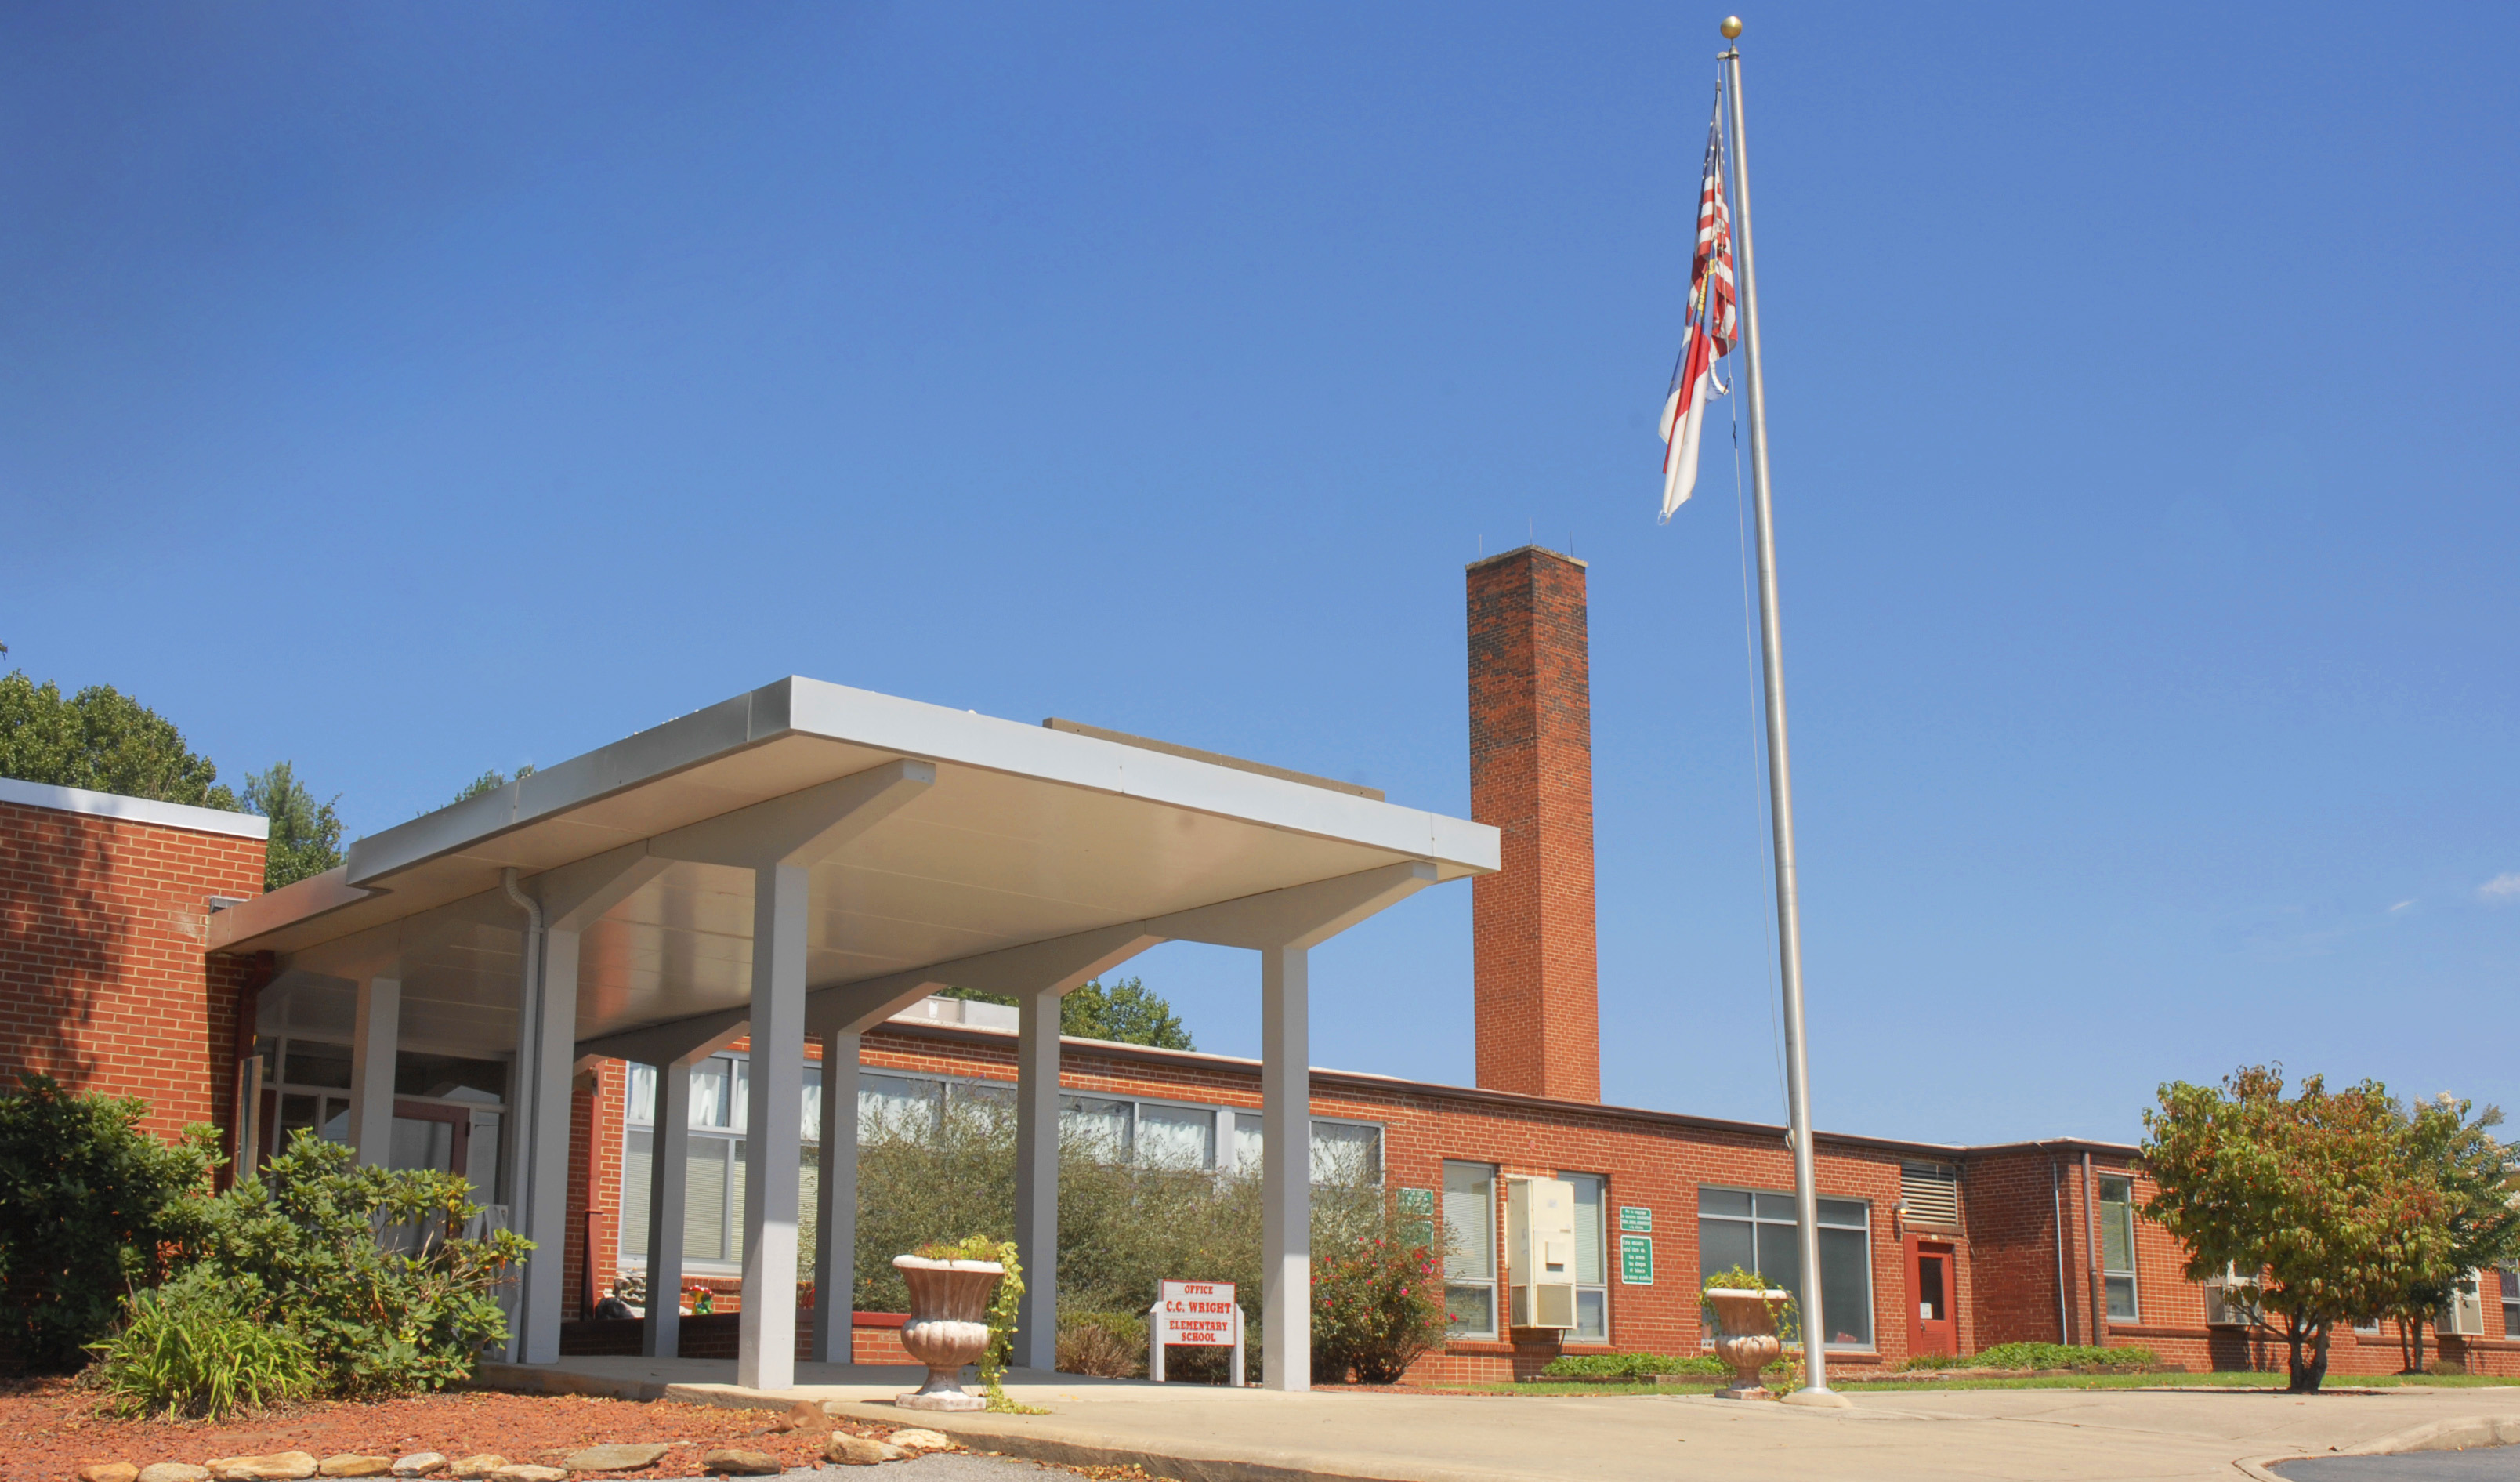 Welcome to C.C. Wright Elementary School Image